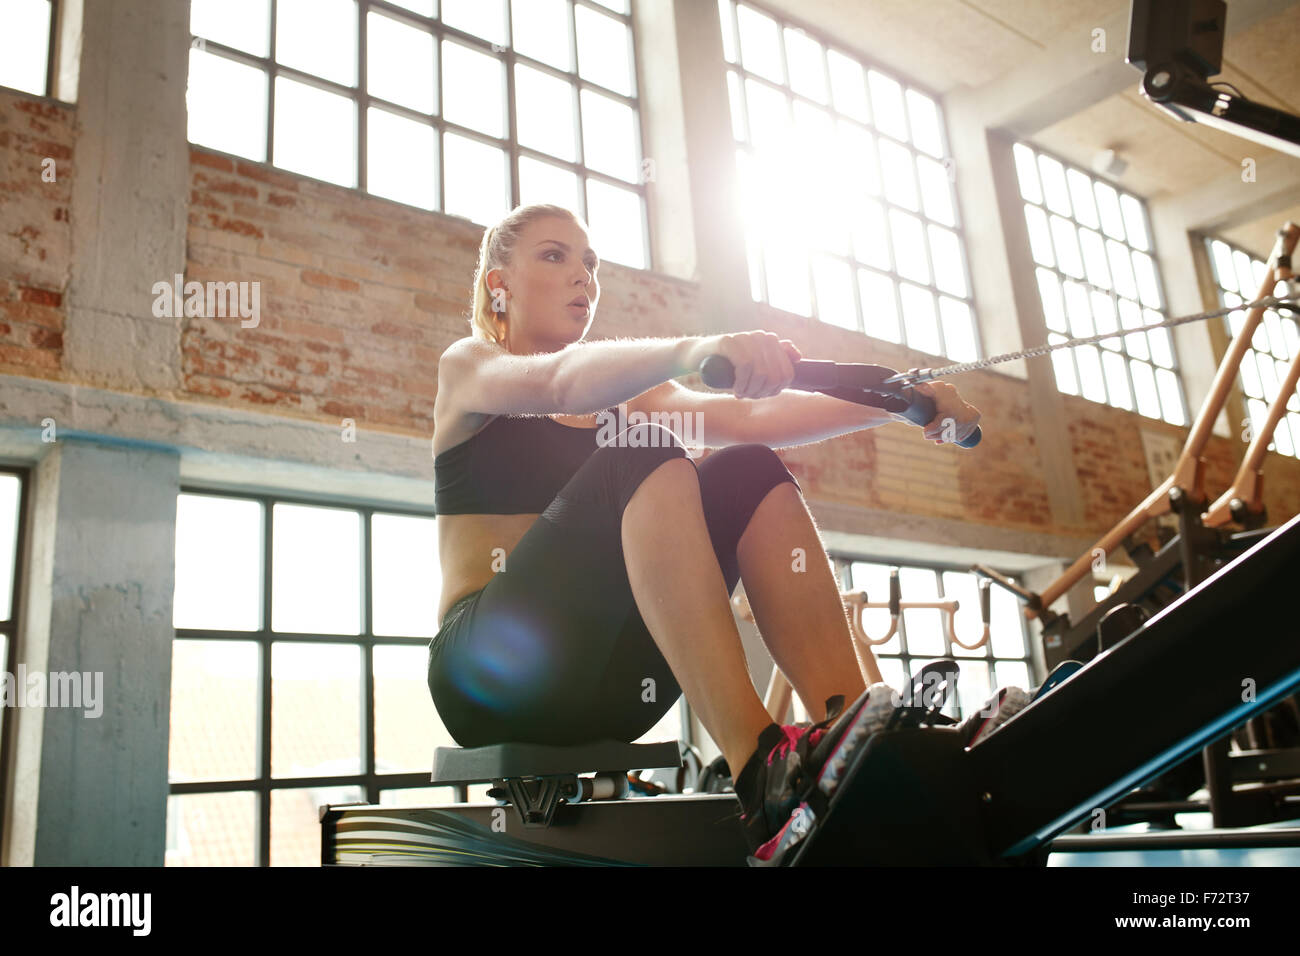 Young caucasian woman doing exercises on fitness machine in gym. Female using rowing machine at  fitness club. - Stock Image